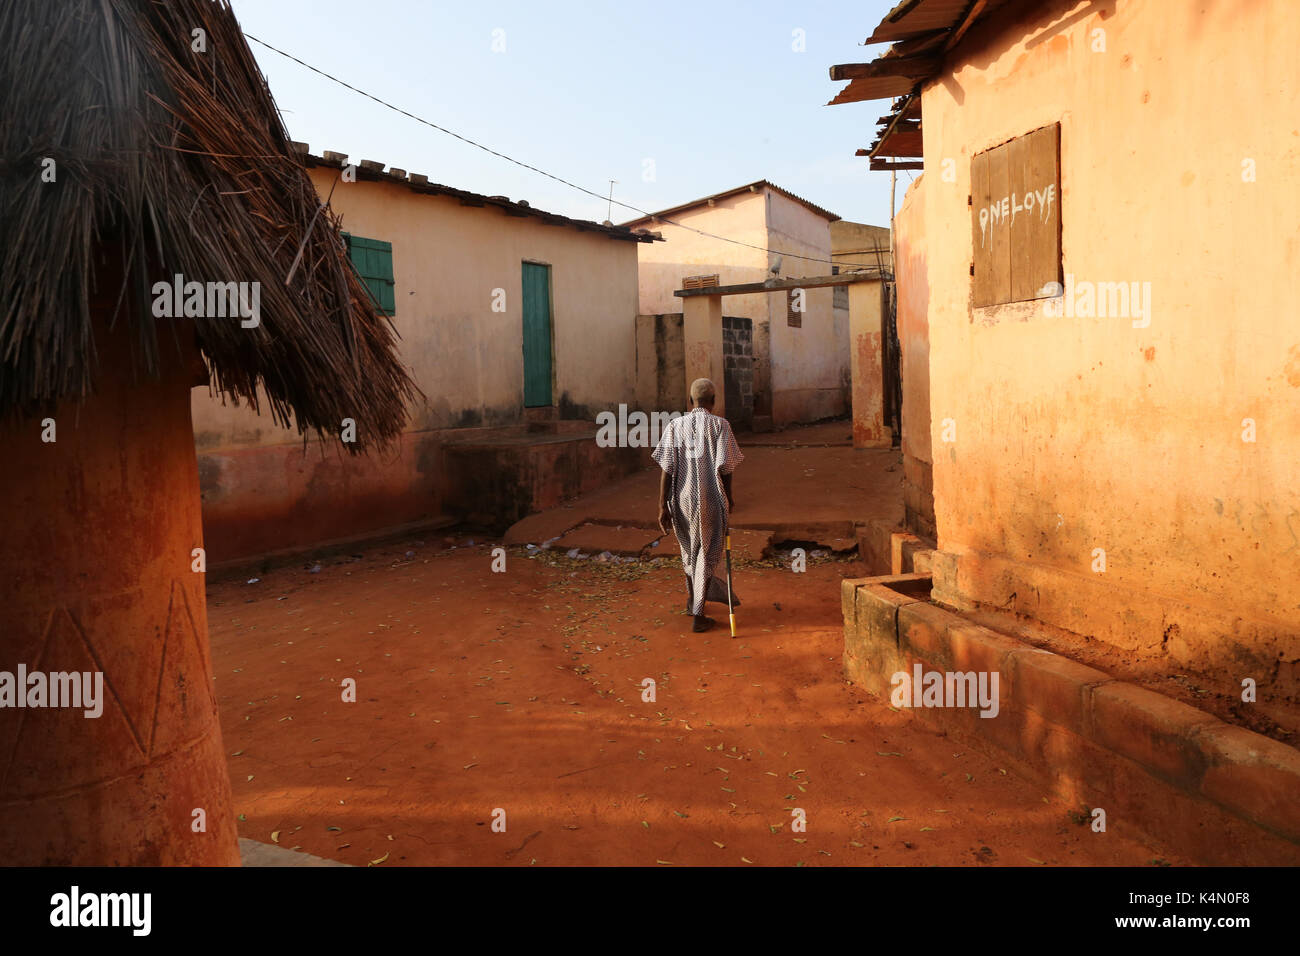 Old man walking in Togoville at sunset, Togoville, Togo, West Africa, Africa - Stock Image